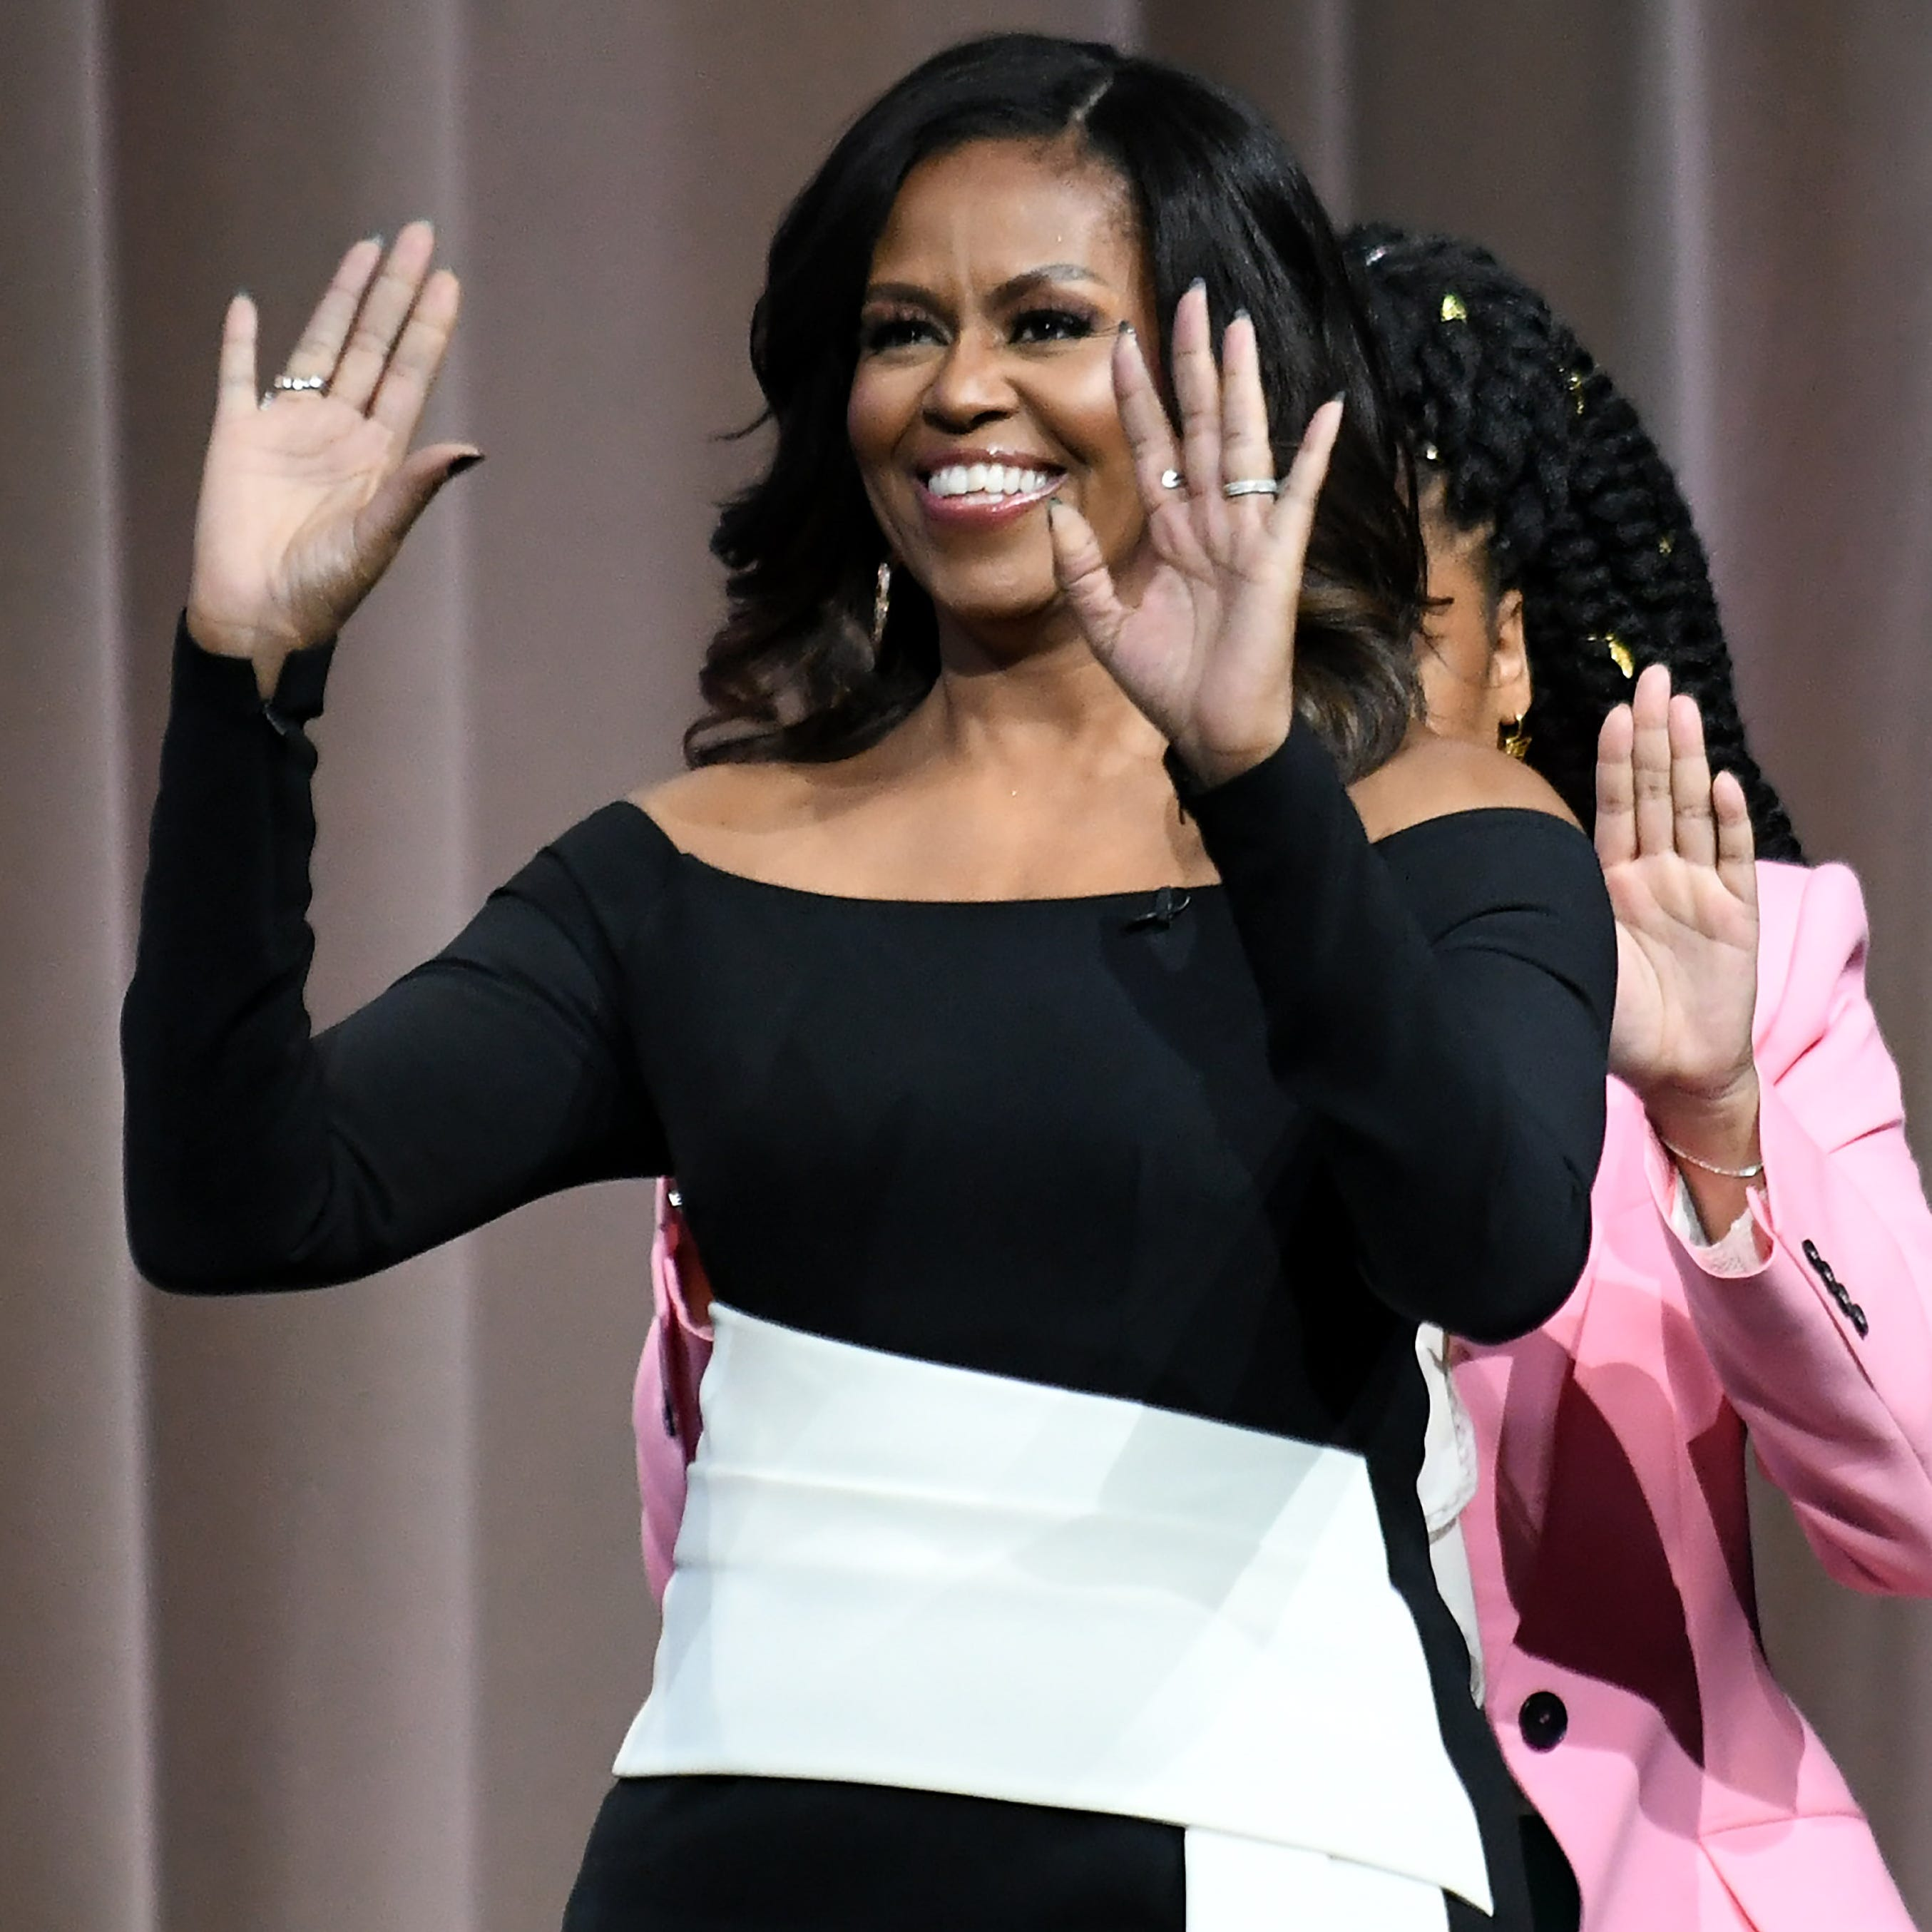 Michelle Obama tells crowd: 'Be brave enough to open ourselves up'